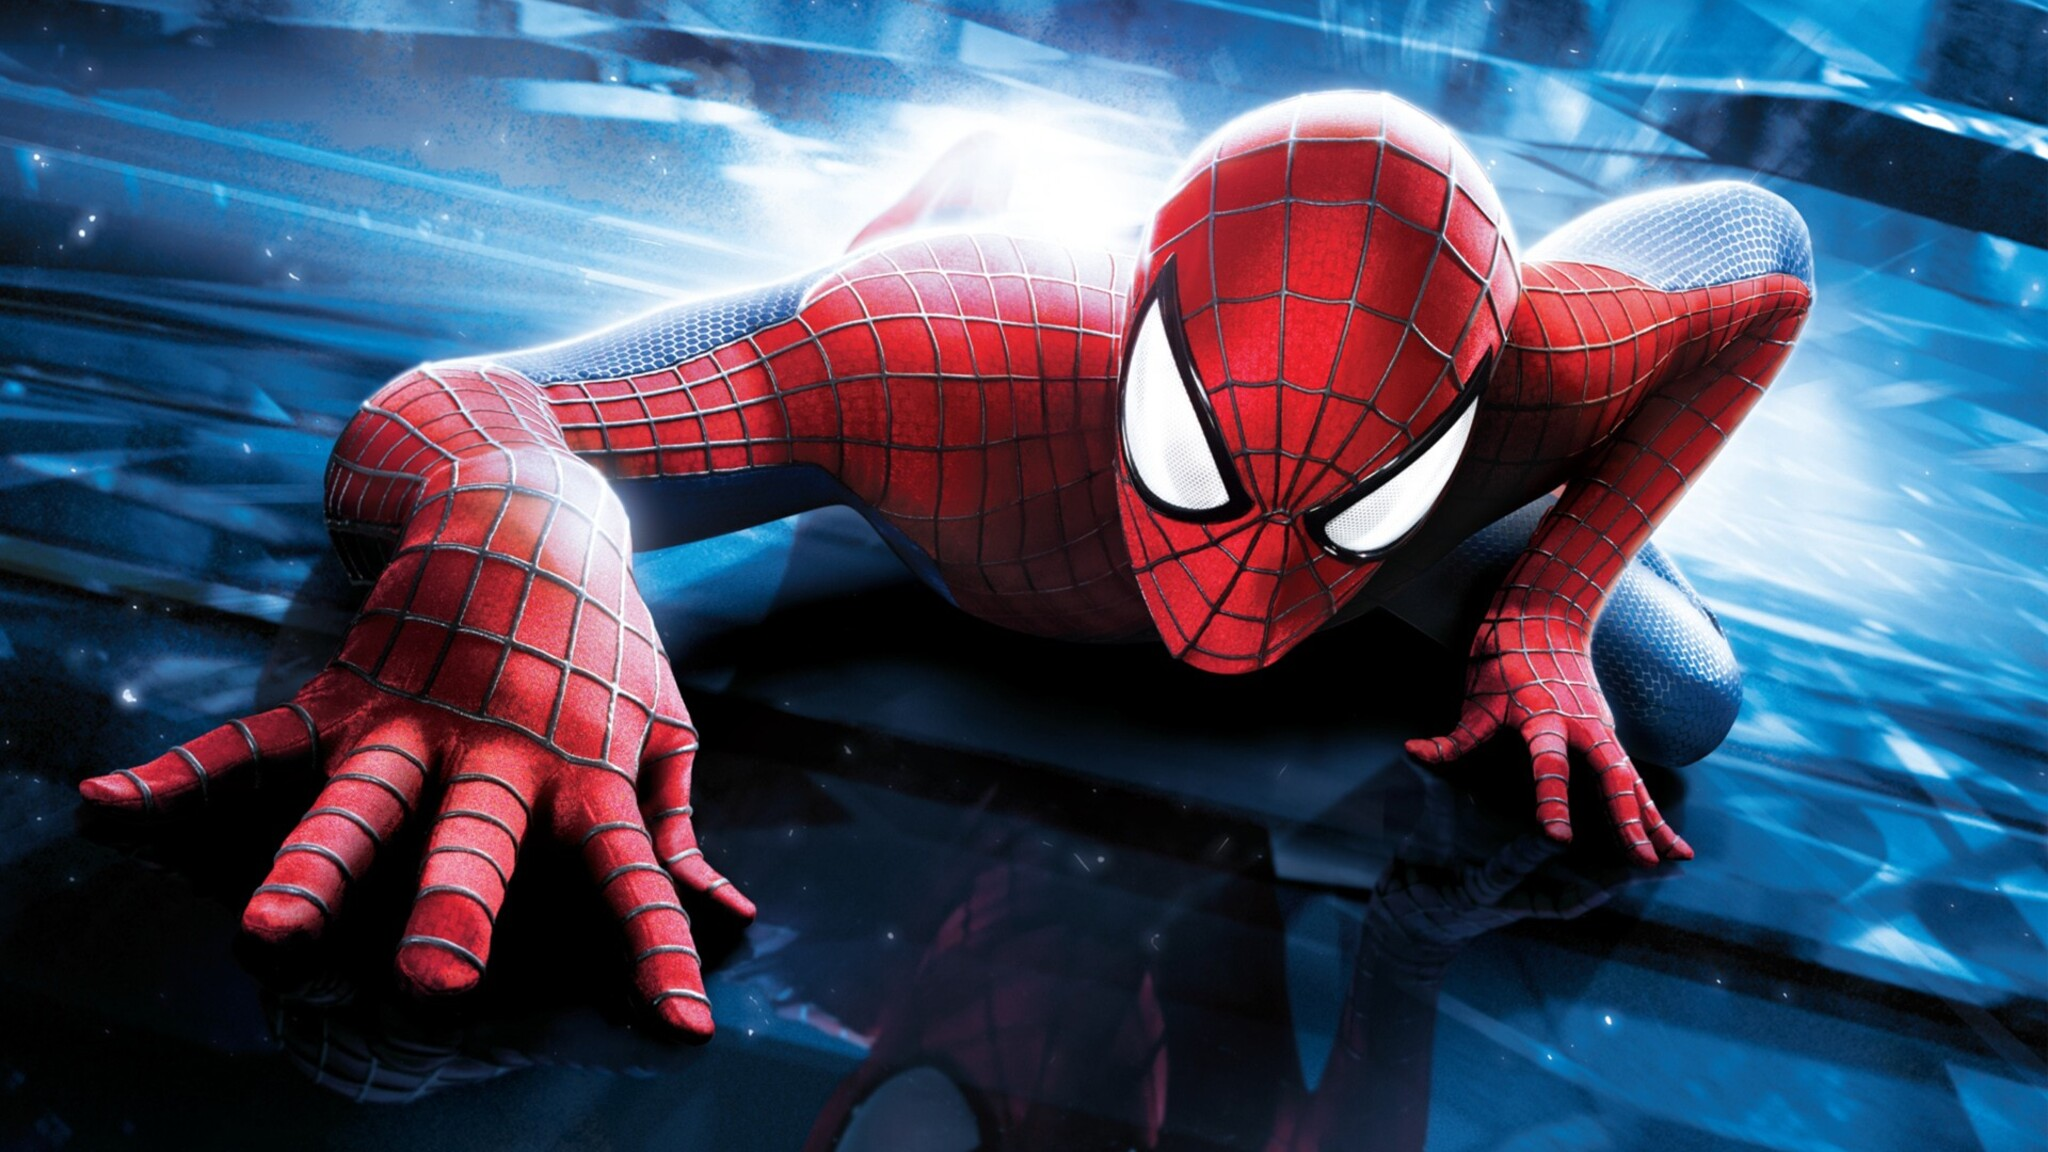 Marvel Hd Wallpapers For Mobile 2048x1152 Spiderman 2048x1152 Resolution Hd 4k Wallpapers